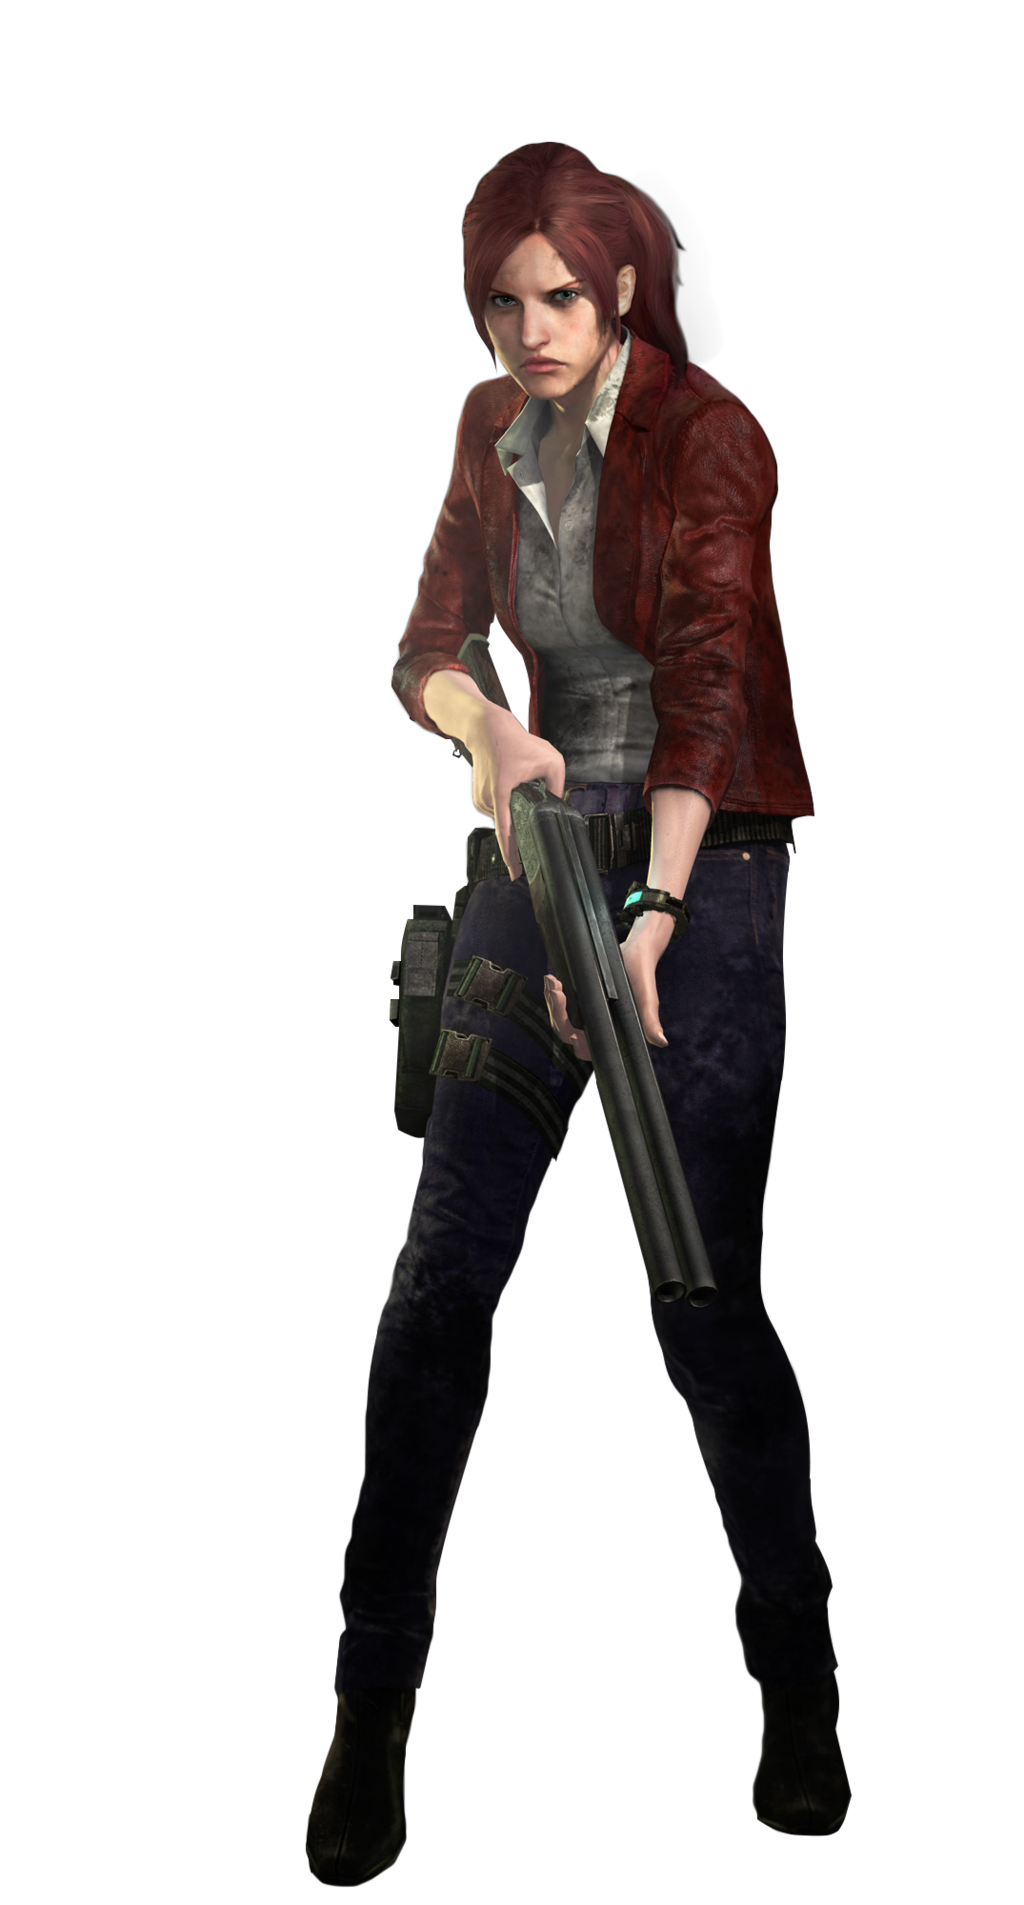 Resident evil revelations 2 png. Image re claire render